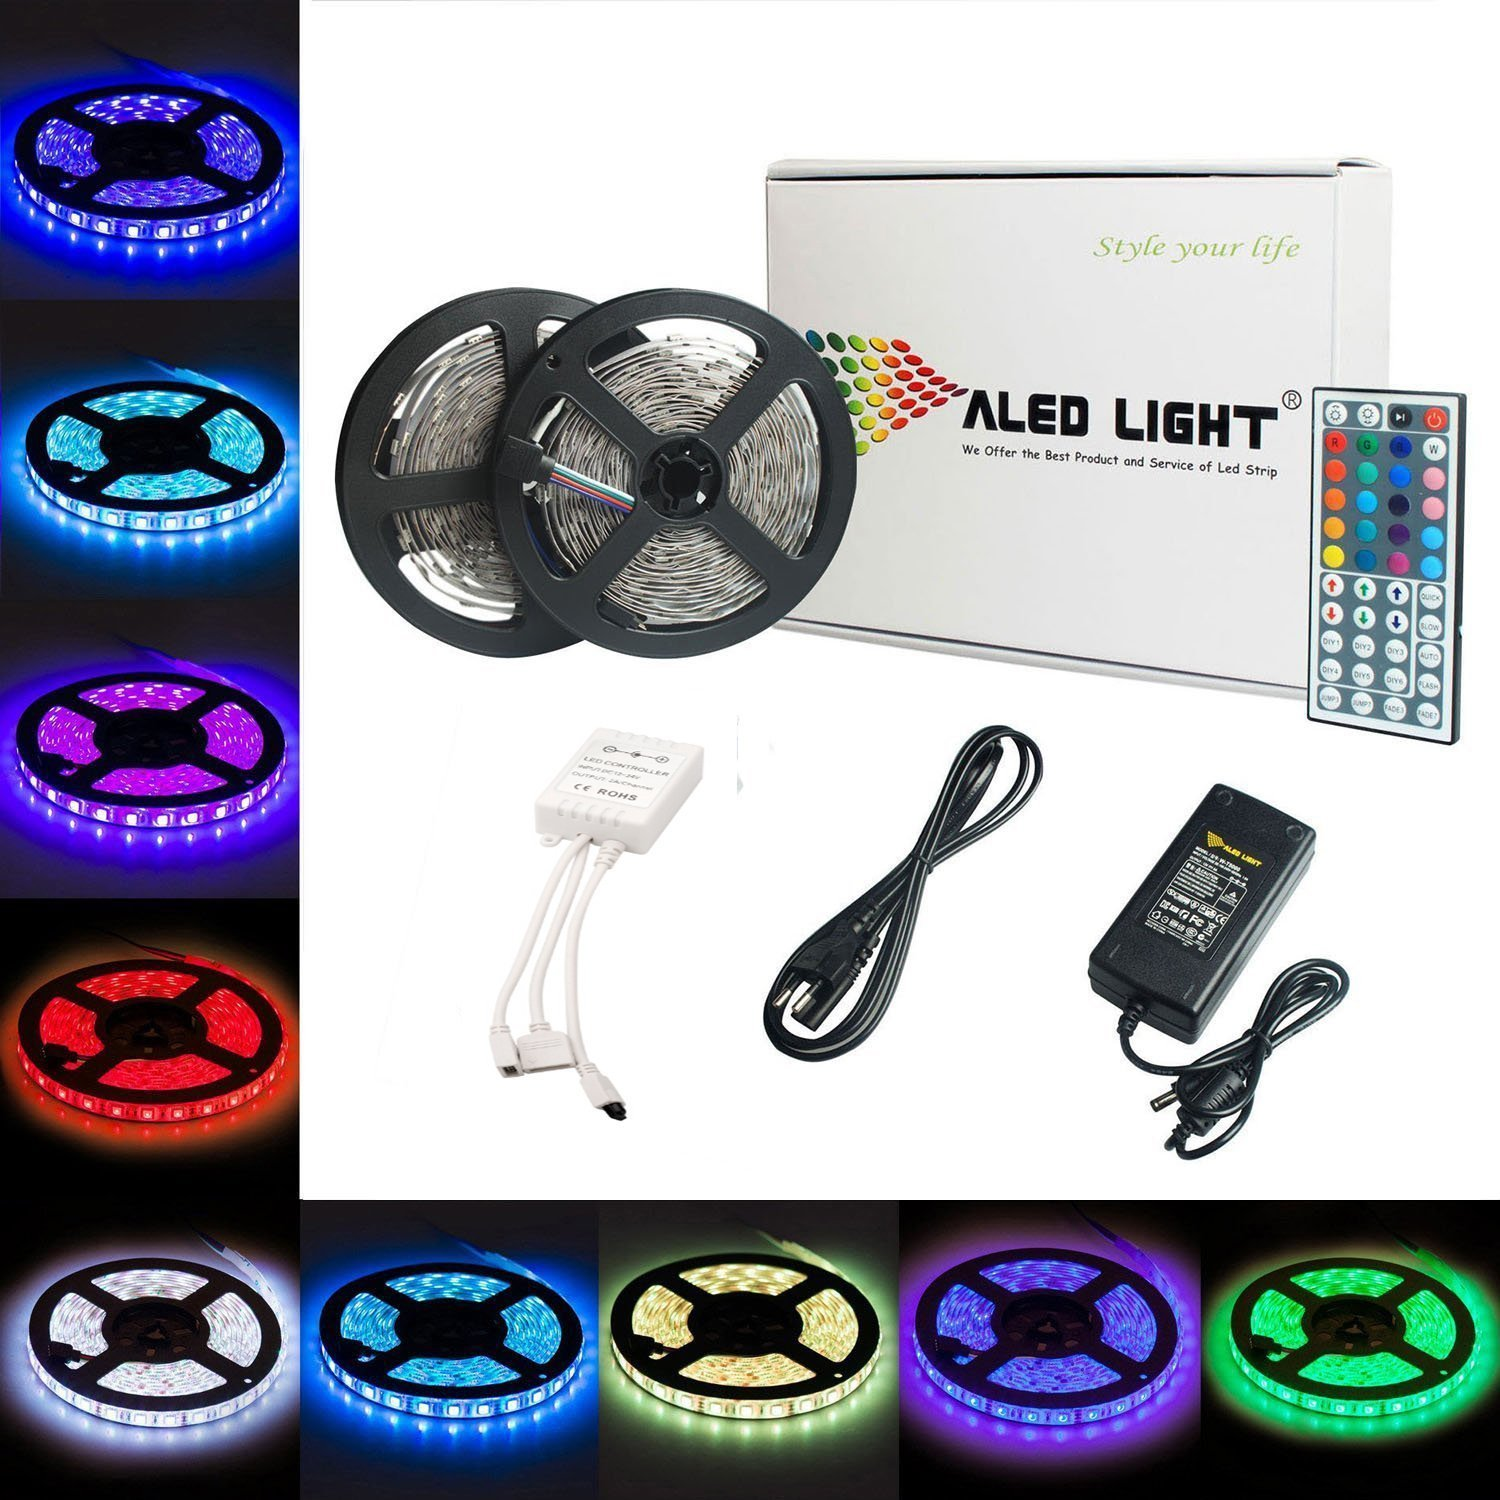 LED Strip Lights Kit, ALED Light LED Flexible Light Strip 32.8Ft/2x5M 5050 150LEDs Non-Waterproof RGB Strip Lighting with Remote DC 12V Power Supply for DIY/Christmas/Party/Decoration (2 Pack)